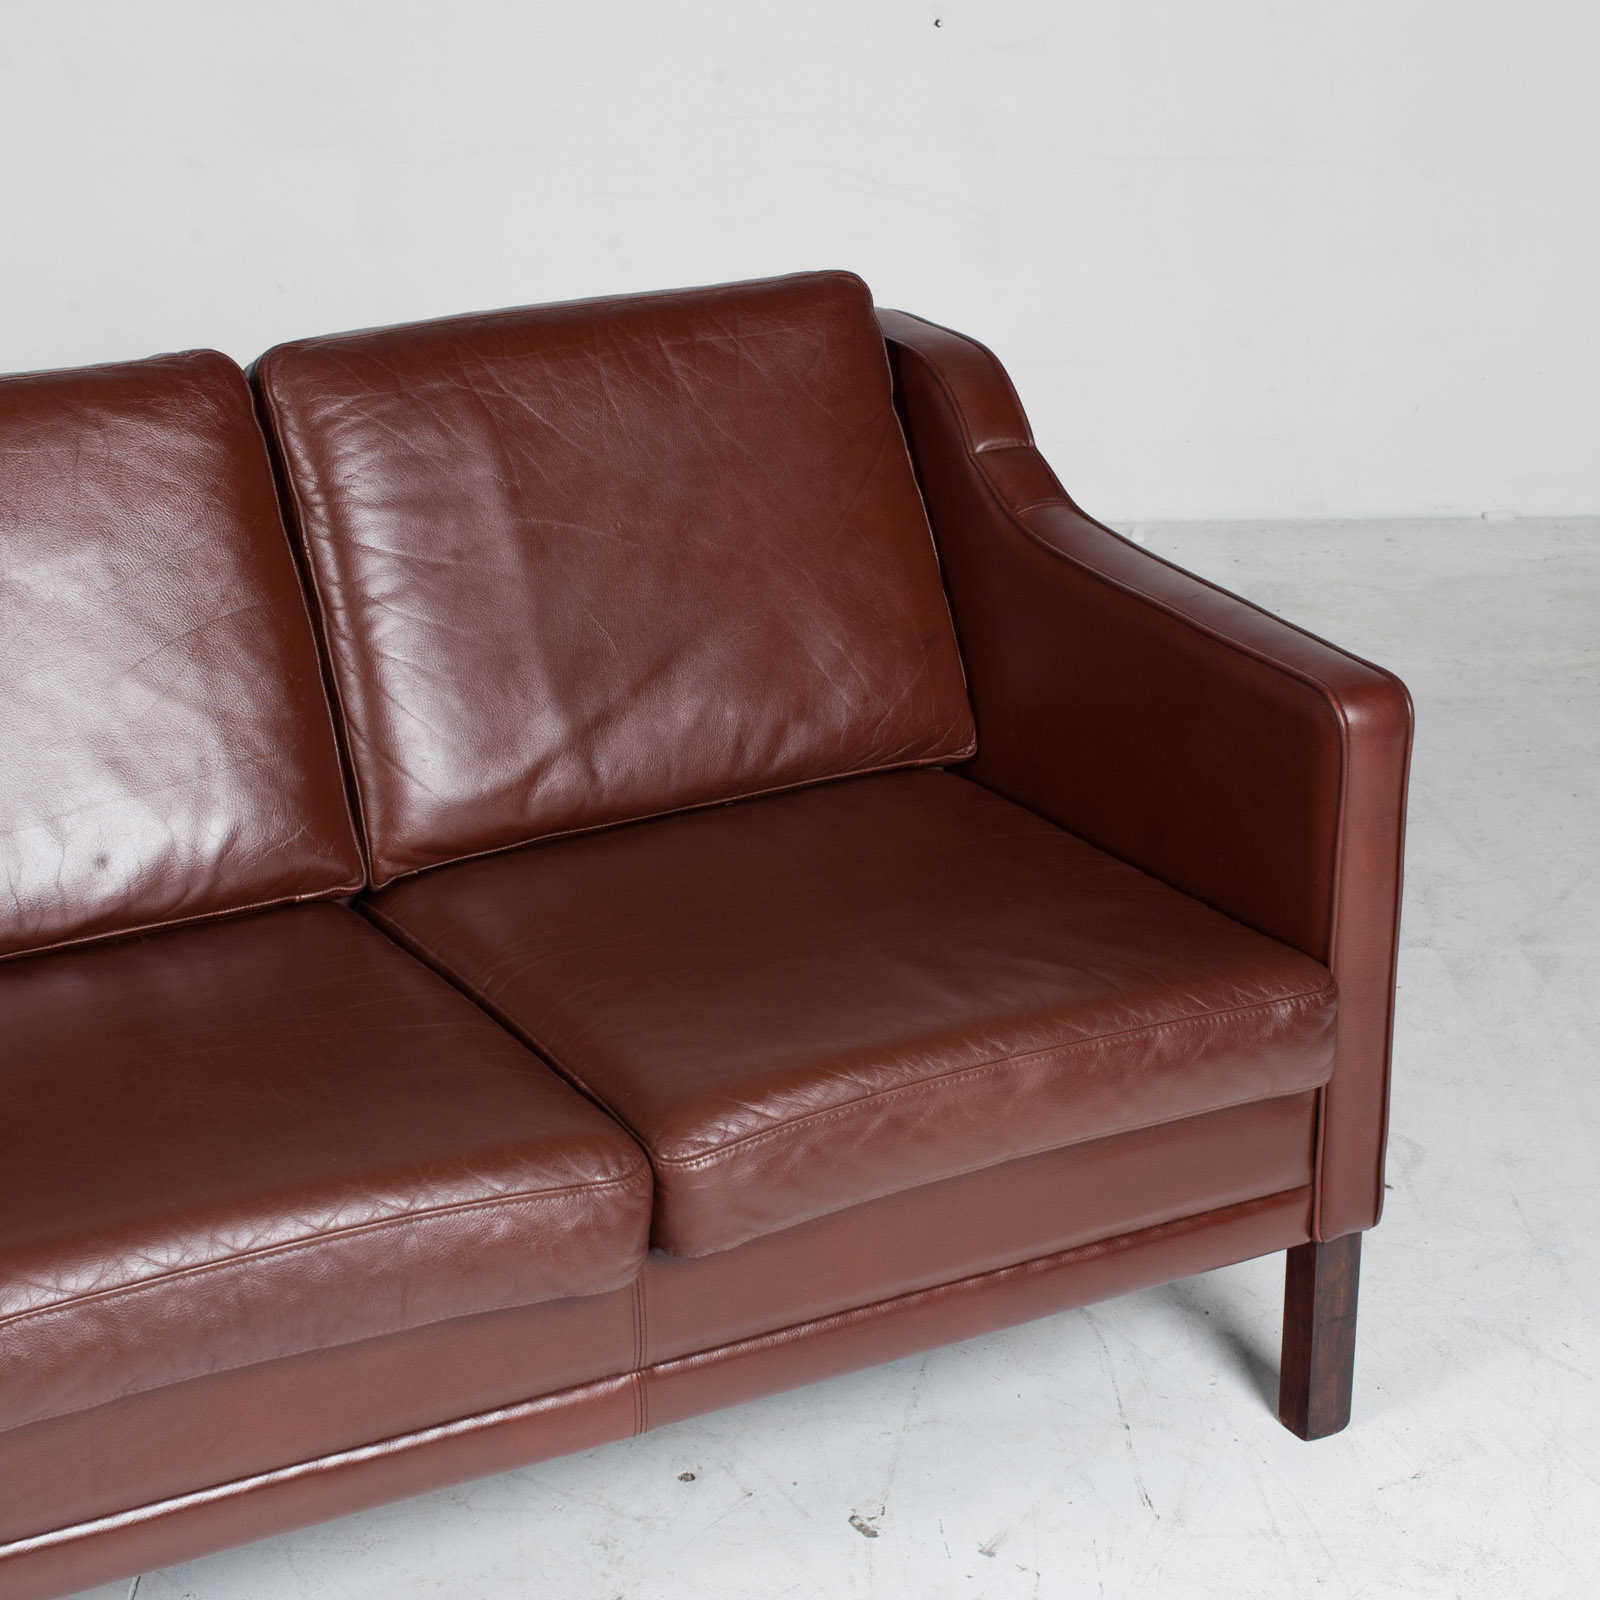 3 Seater Sofa In Tan Leather 1960s Denmark4